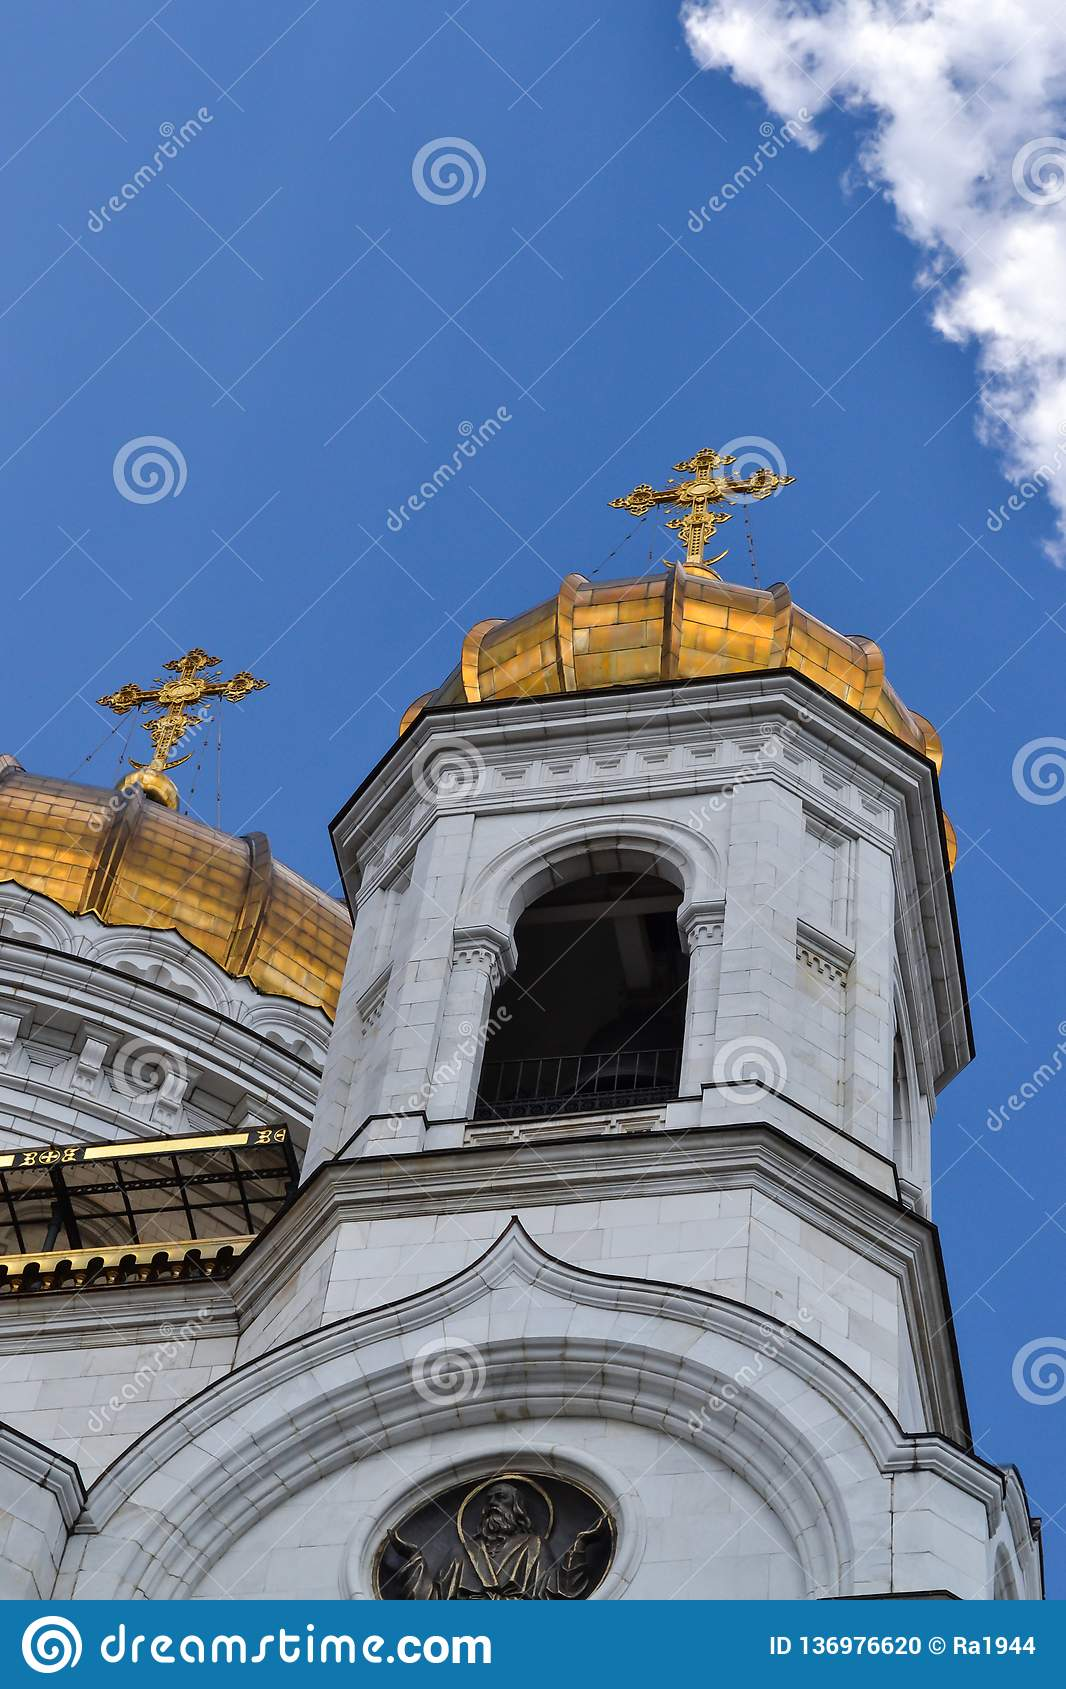 Beautiful building of the Russian Orthodox Church. Covered in gold dome. Crosses and exterior decoration. Love to God